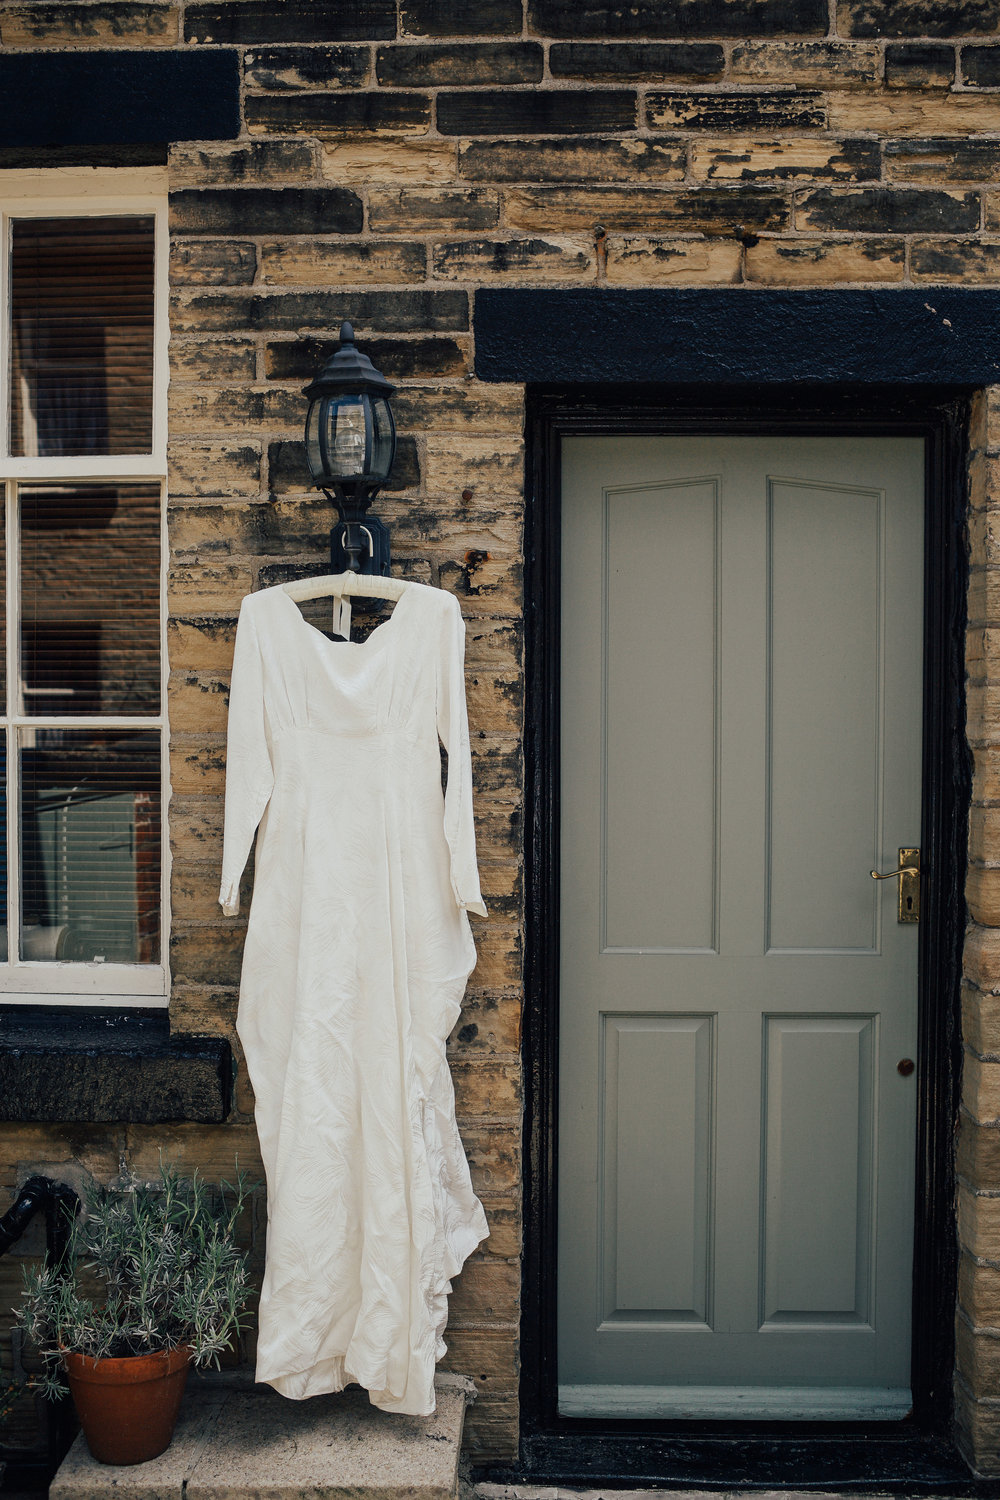 VICTORIA_HALL_SALTAIRE_VINTAGE_YORKSHIRE_WEDDING_PJ_PHILLIPS_PHOTOGRAPHY_6.jpg